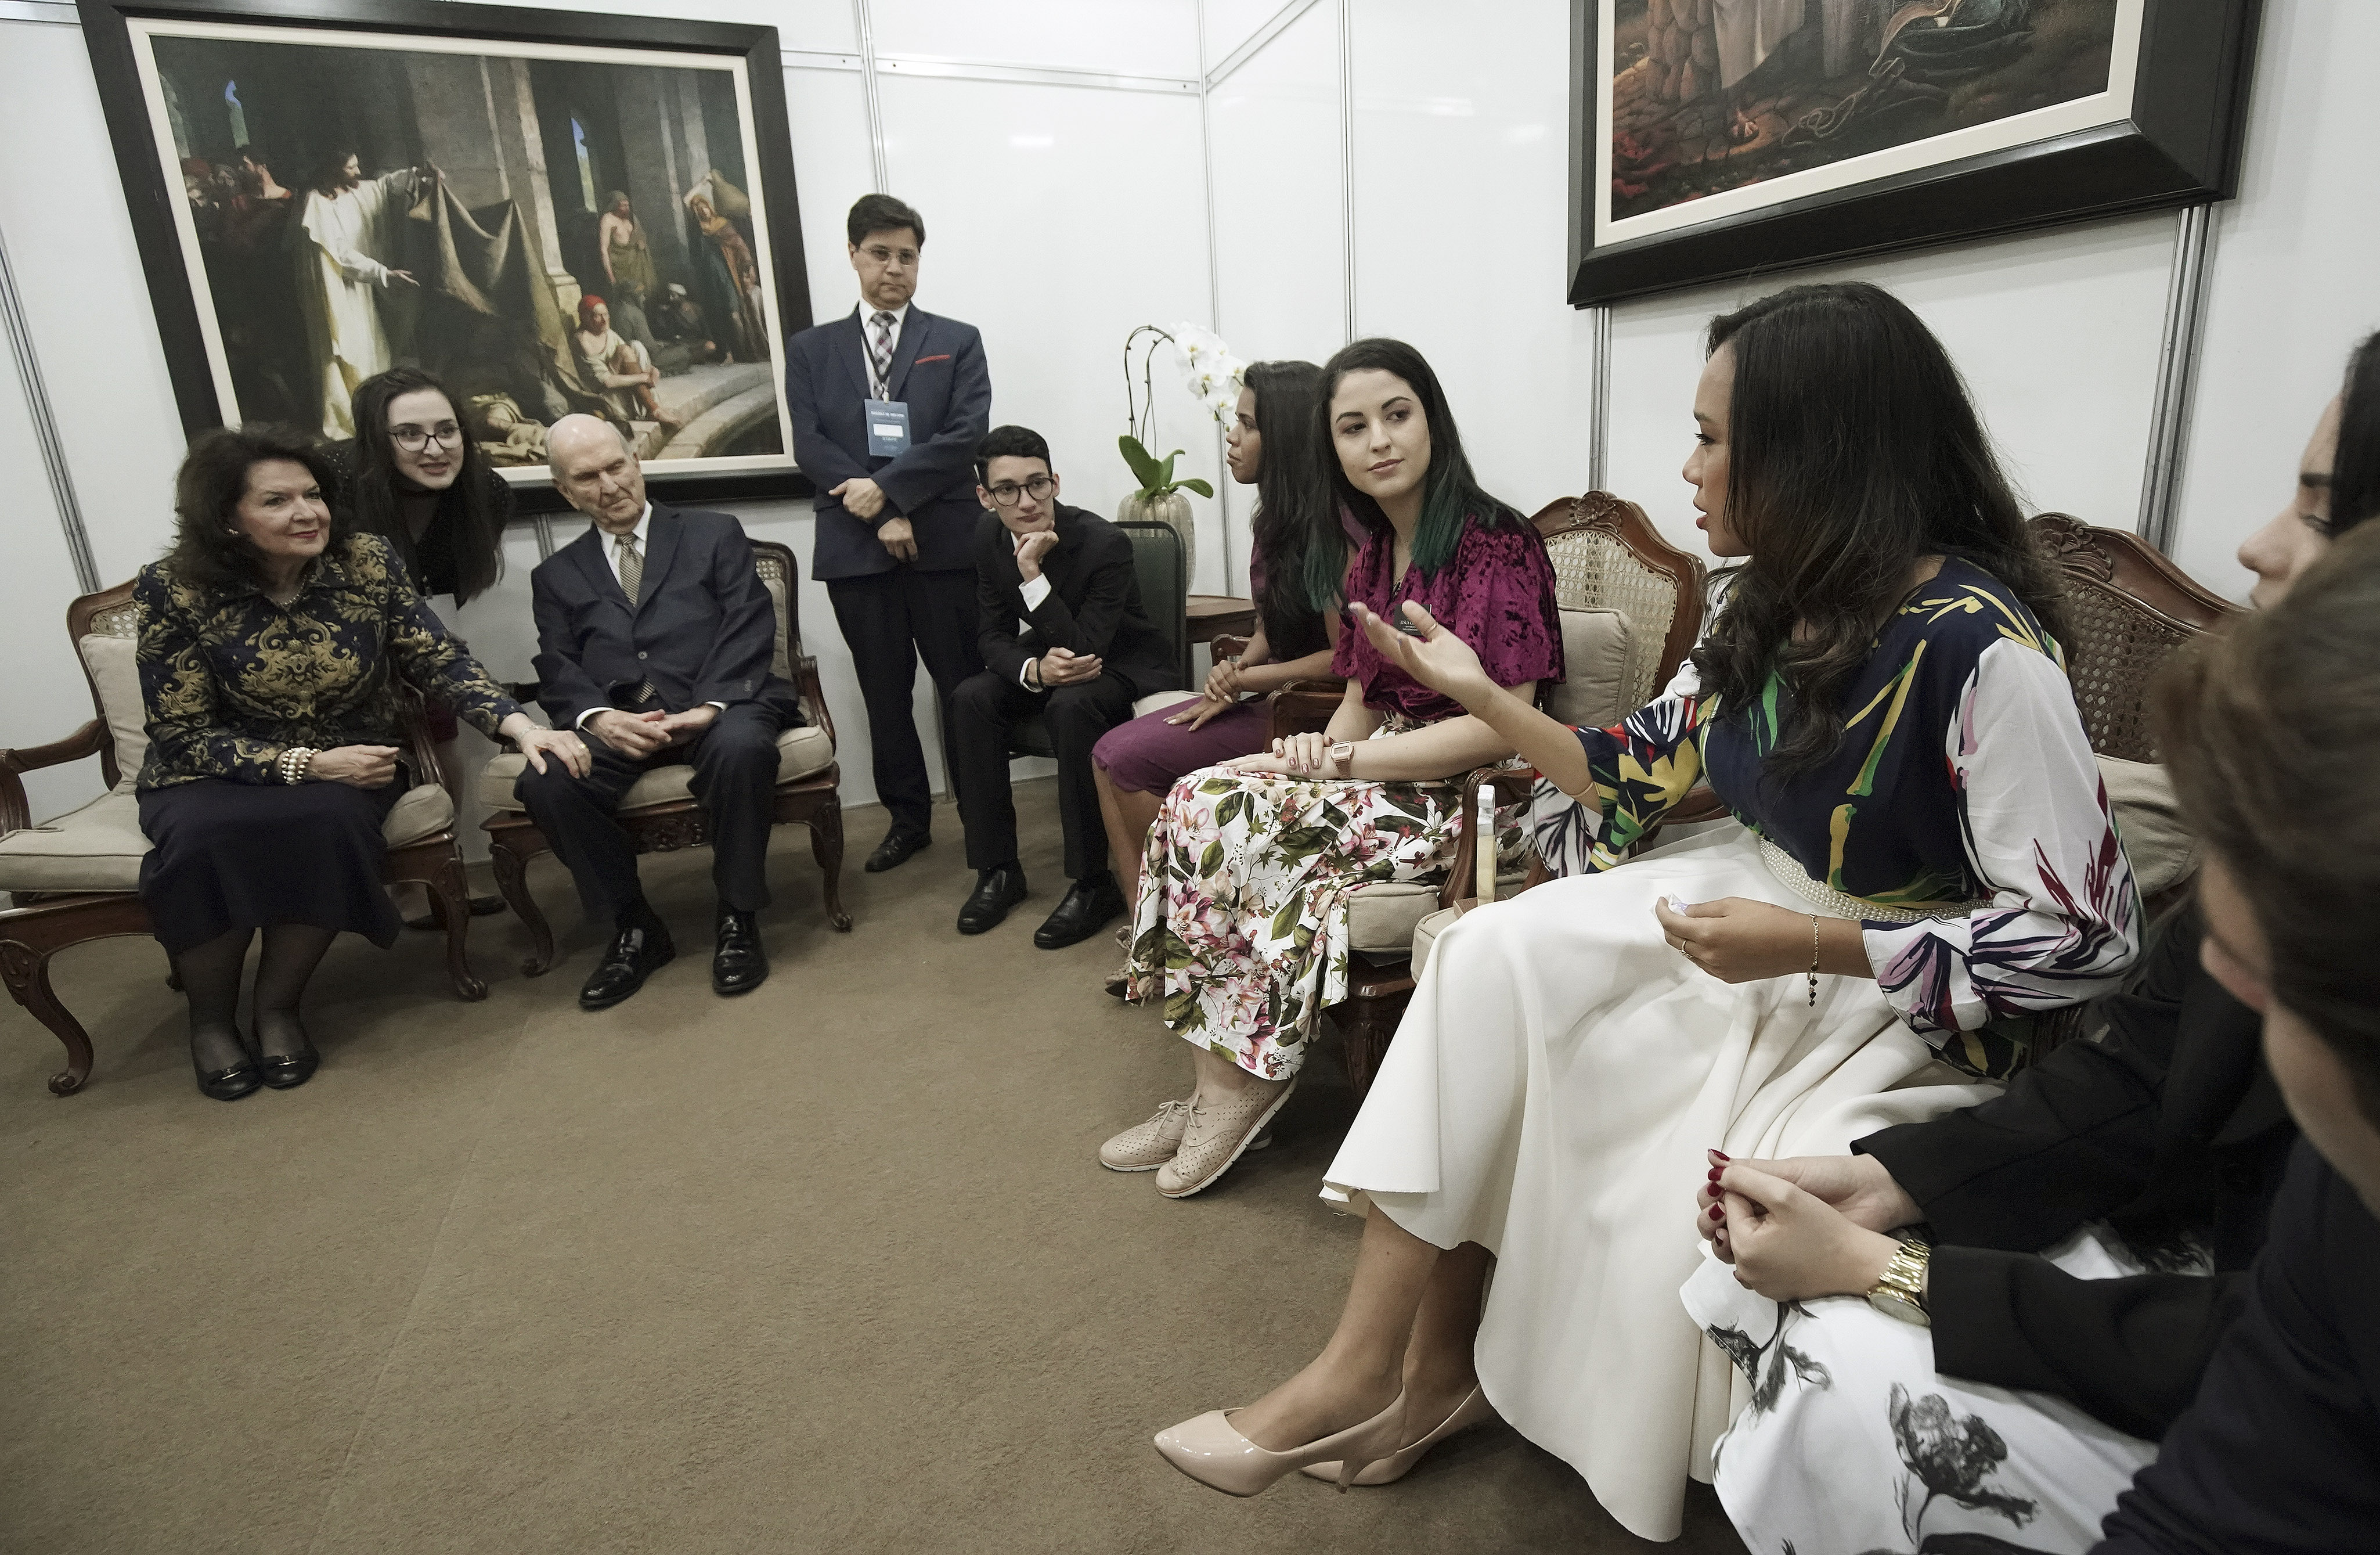 Nicole Luz asks President Russell M. Nelson of The Church of Jesus Christ of Latter-day Saints a question in Sao Paulo, Brazil, on Sunday, Sept. 1, 2019.